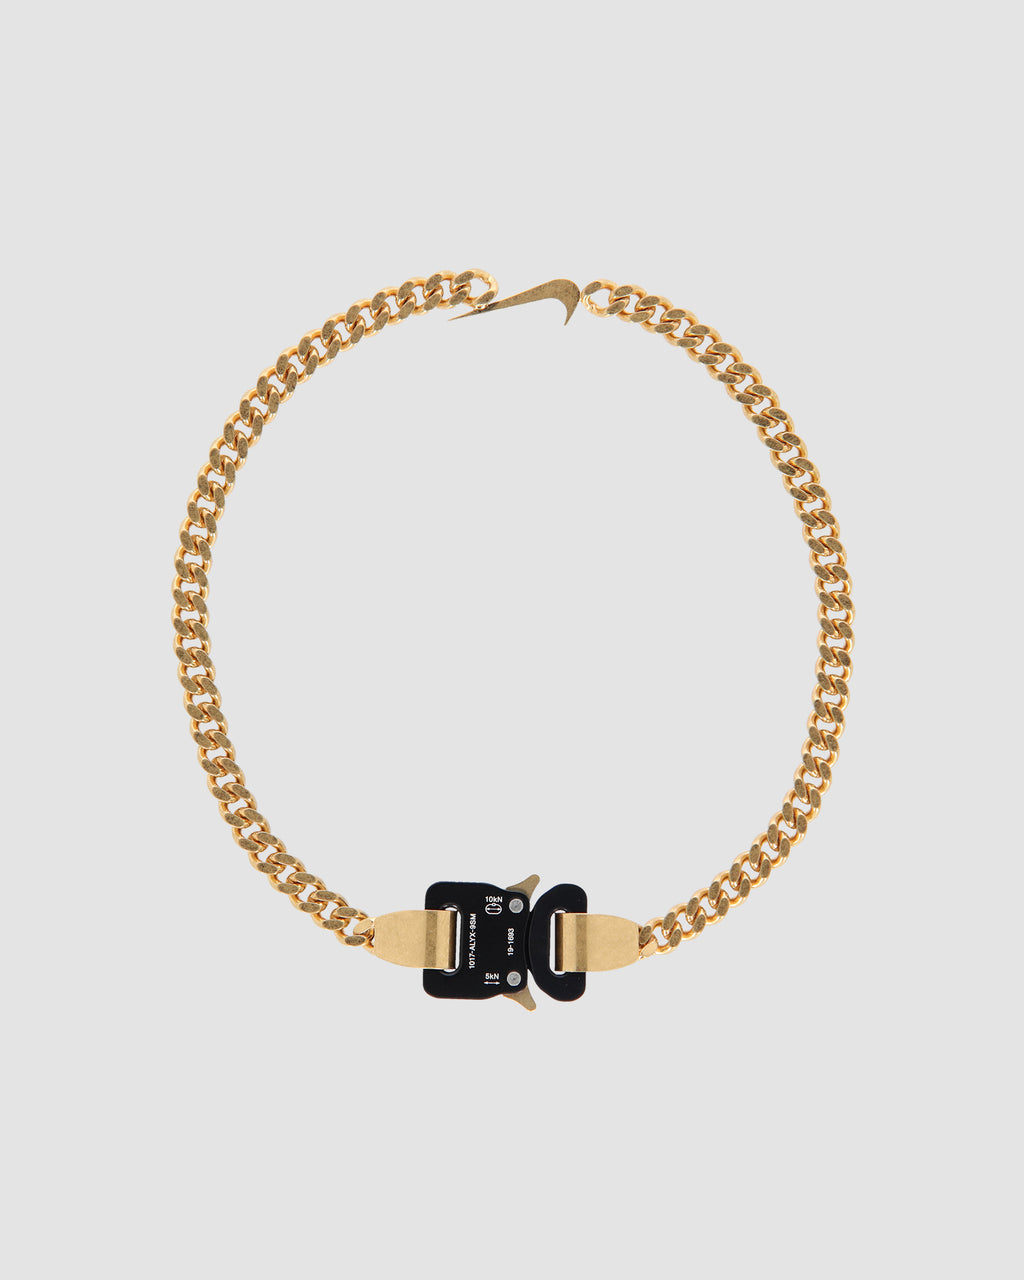 1017 ALYX 9SM | SWOOSH HERO CHAIN GOLD | Jewellery | F19, S19